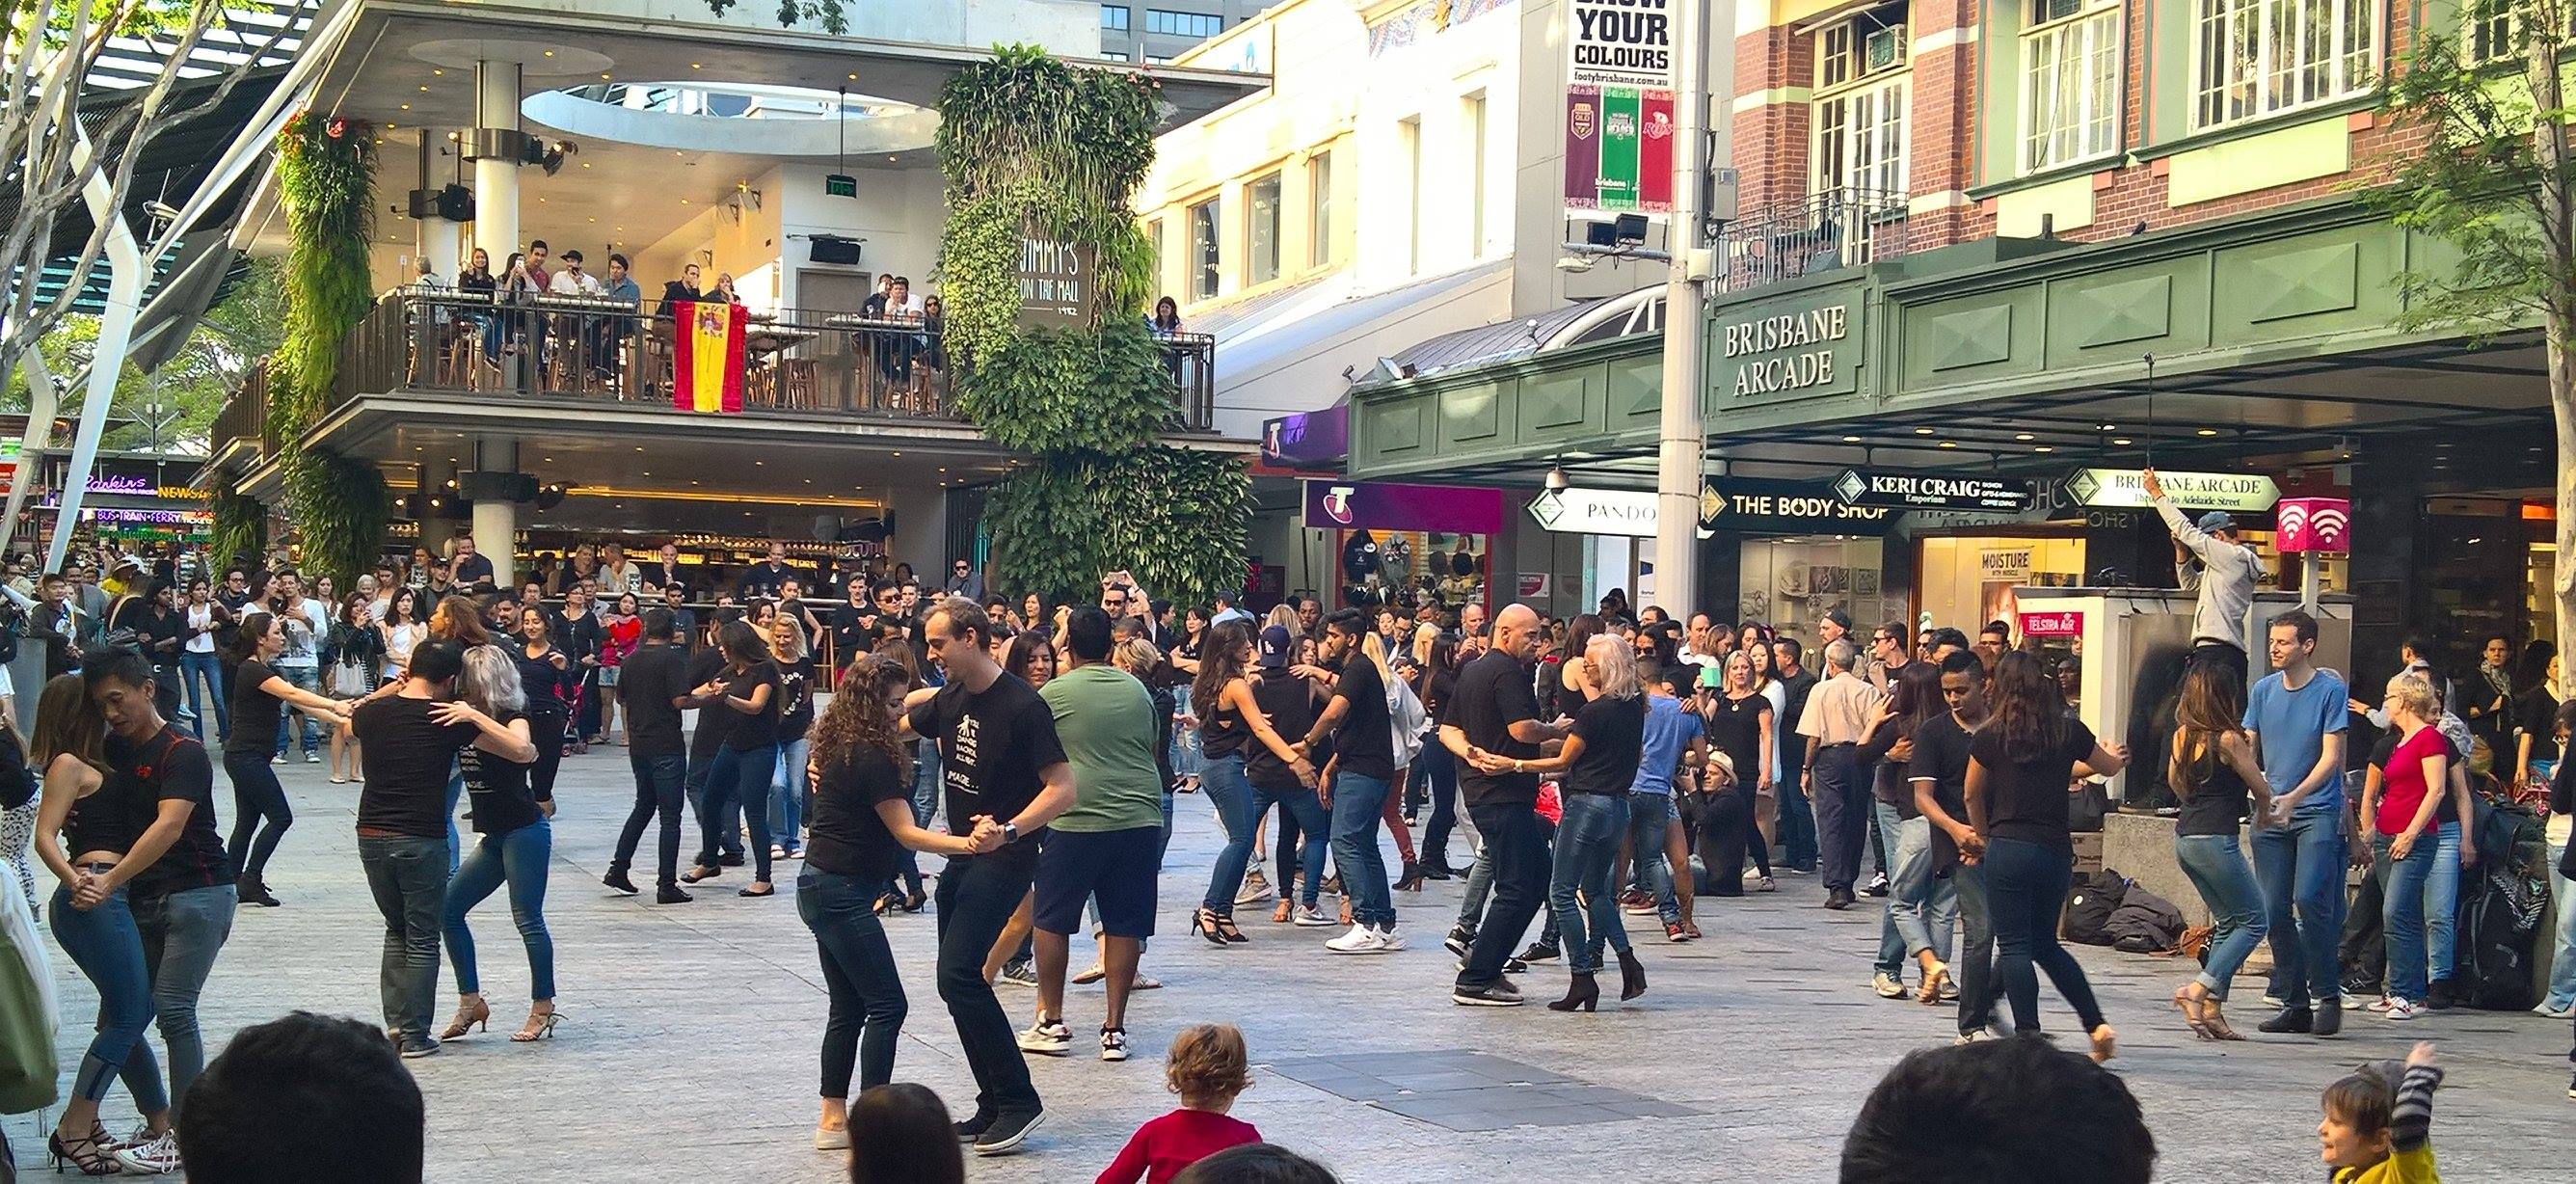 Paradizo - Queen Street Mall 2016